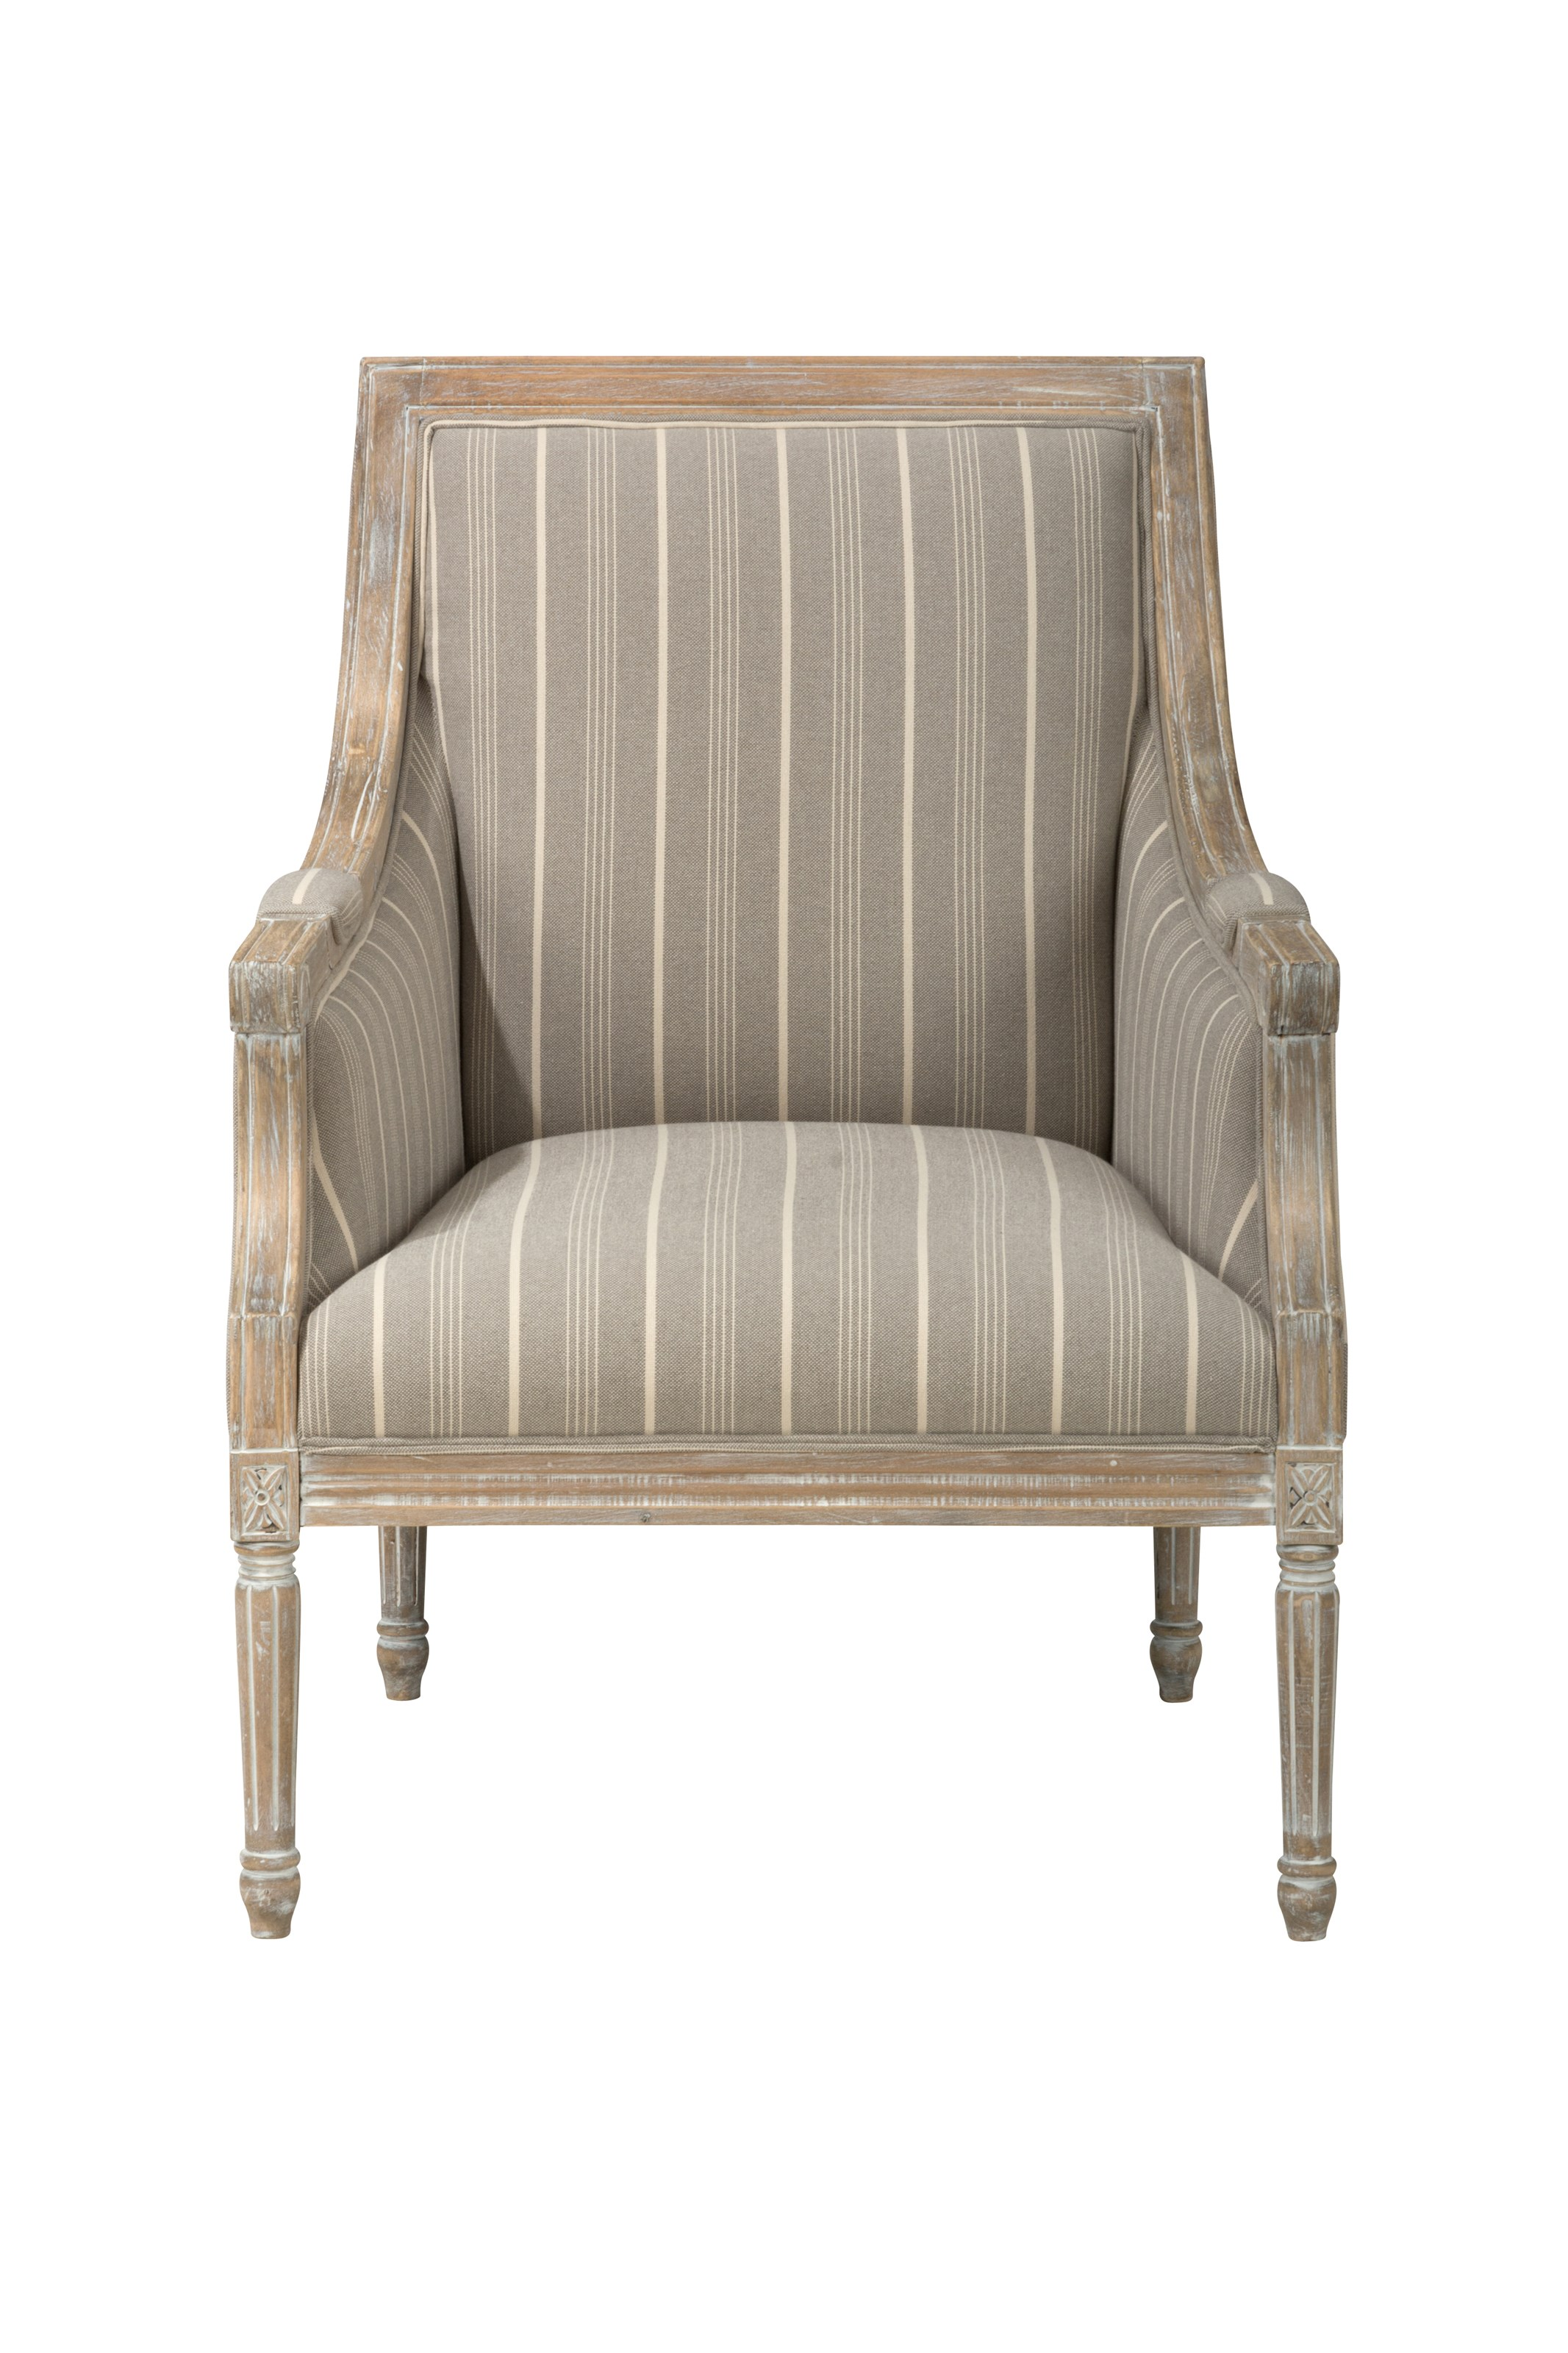 Jofran Easy Living McKenna Accent Chair  - Item Number: MCKENNA-CH-TAUPE